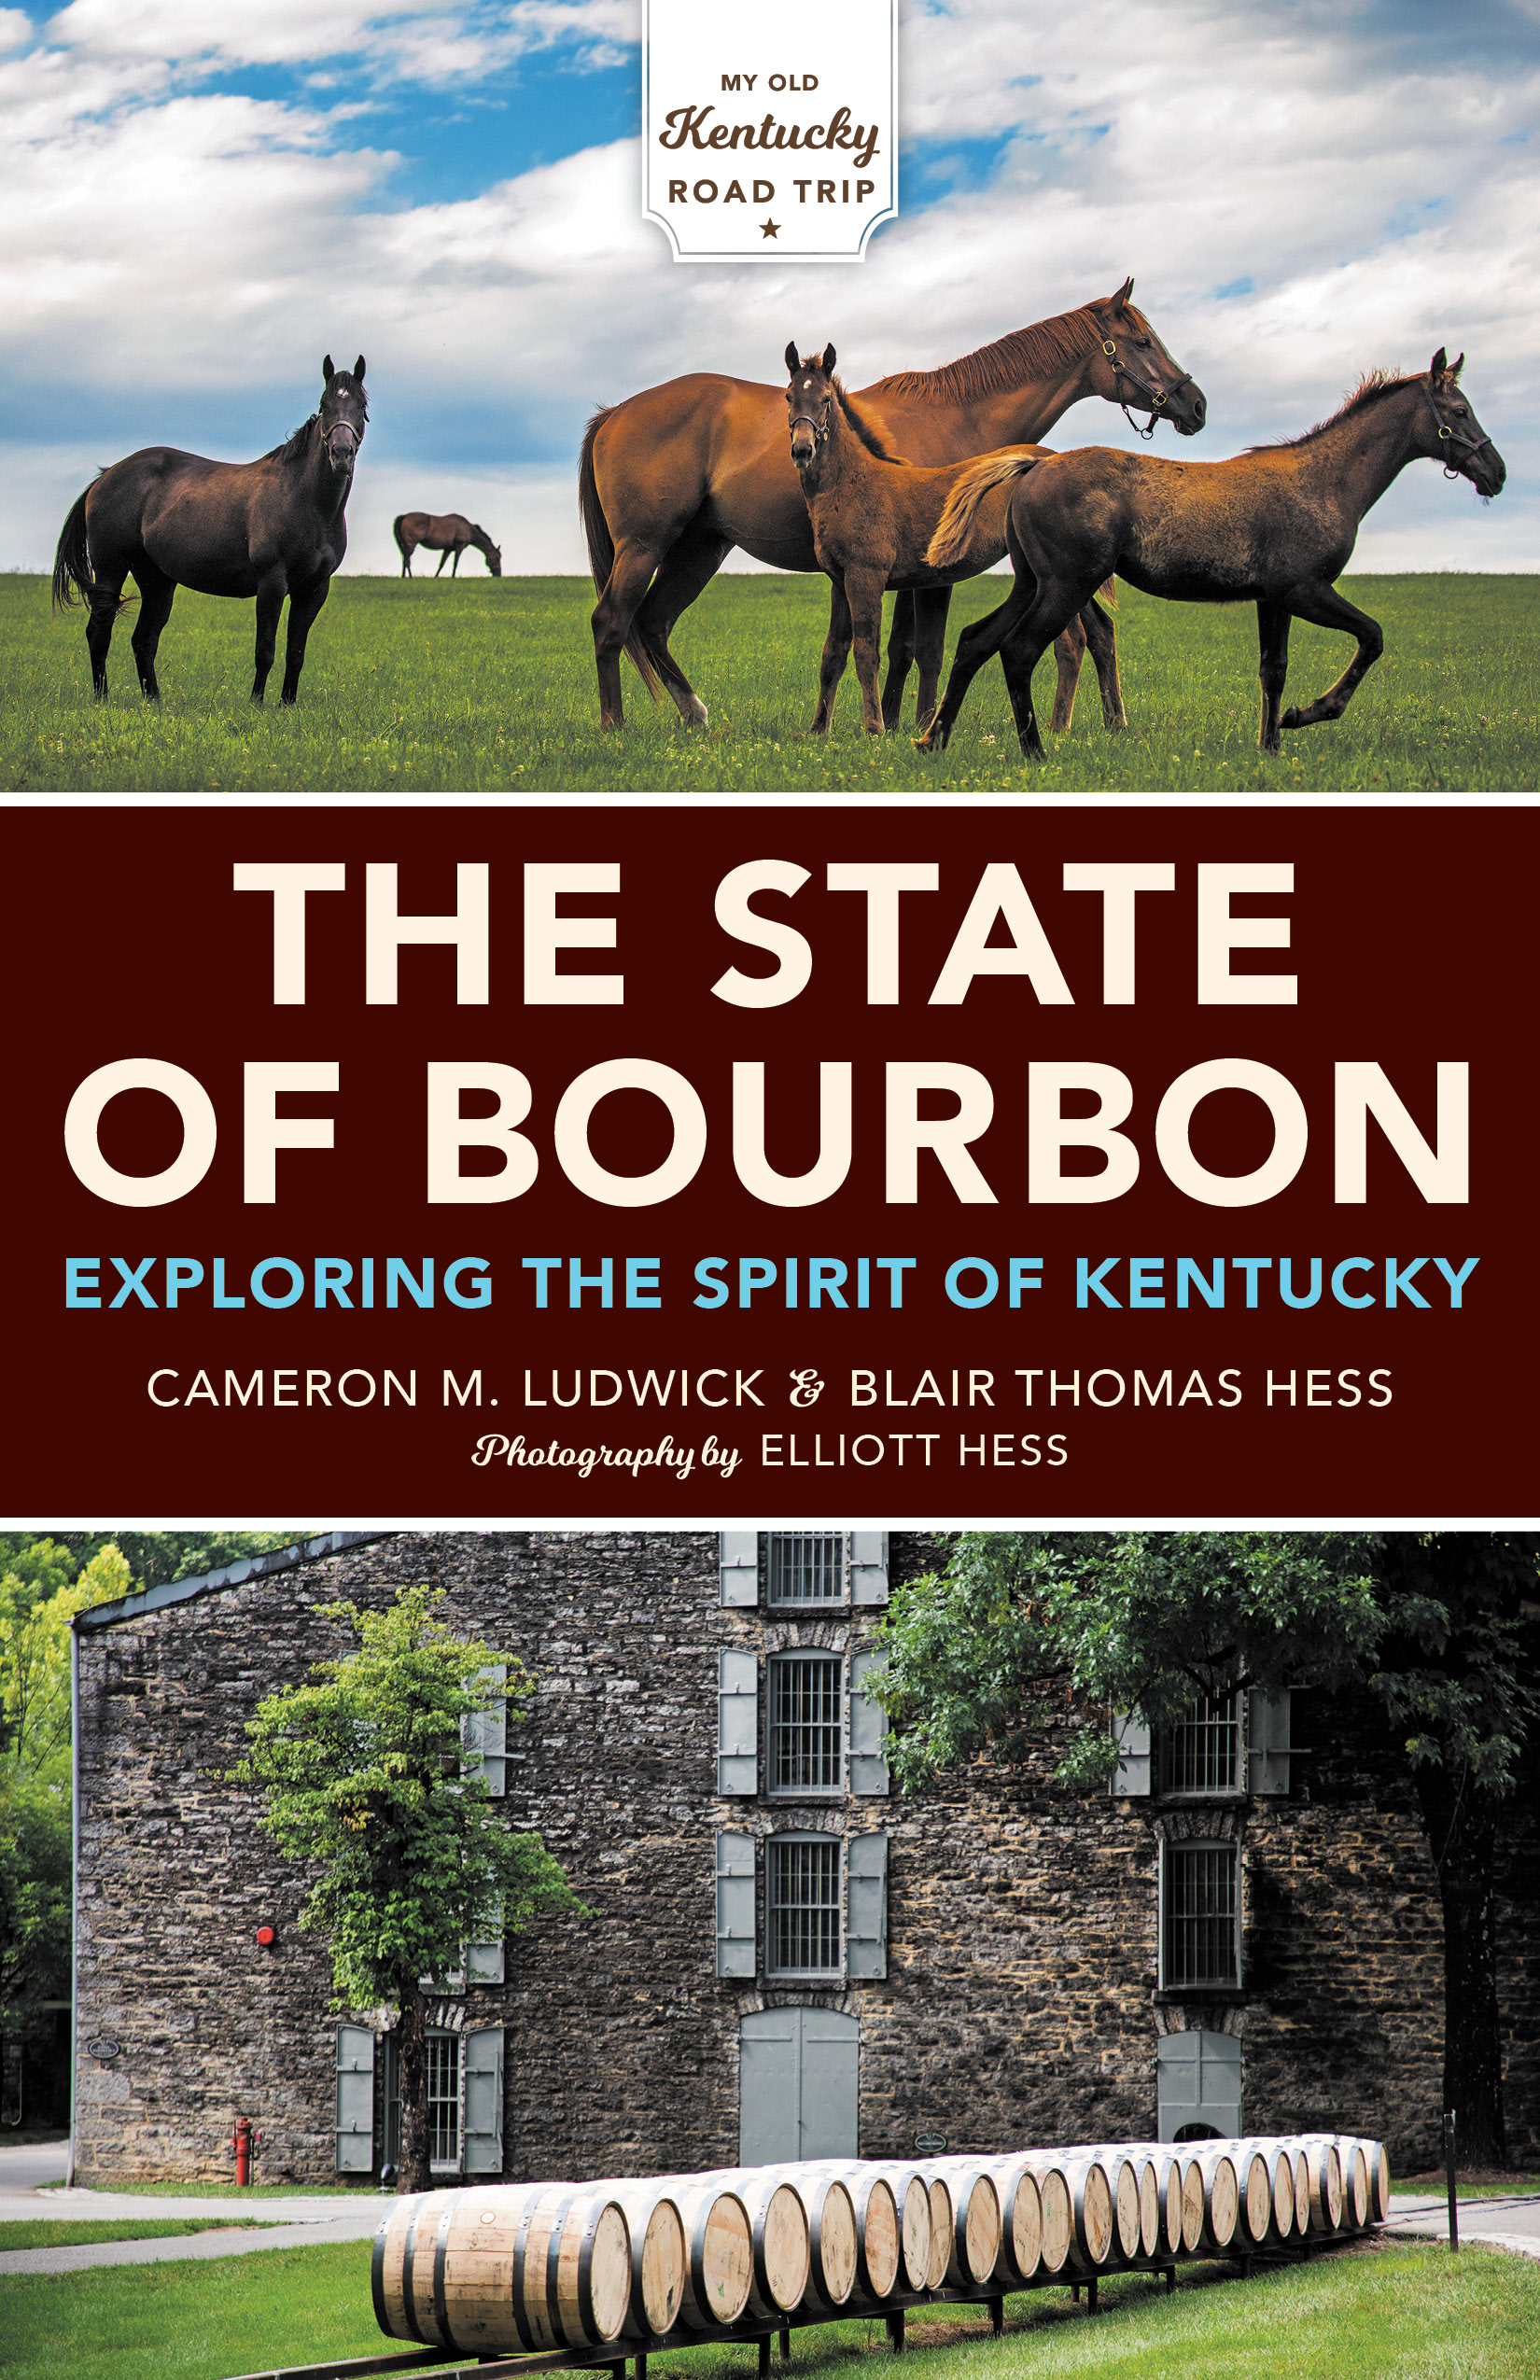 The State of Bourbon_F18_cover_FINAL (1).JPG